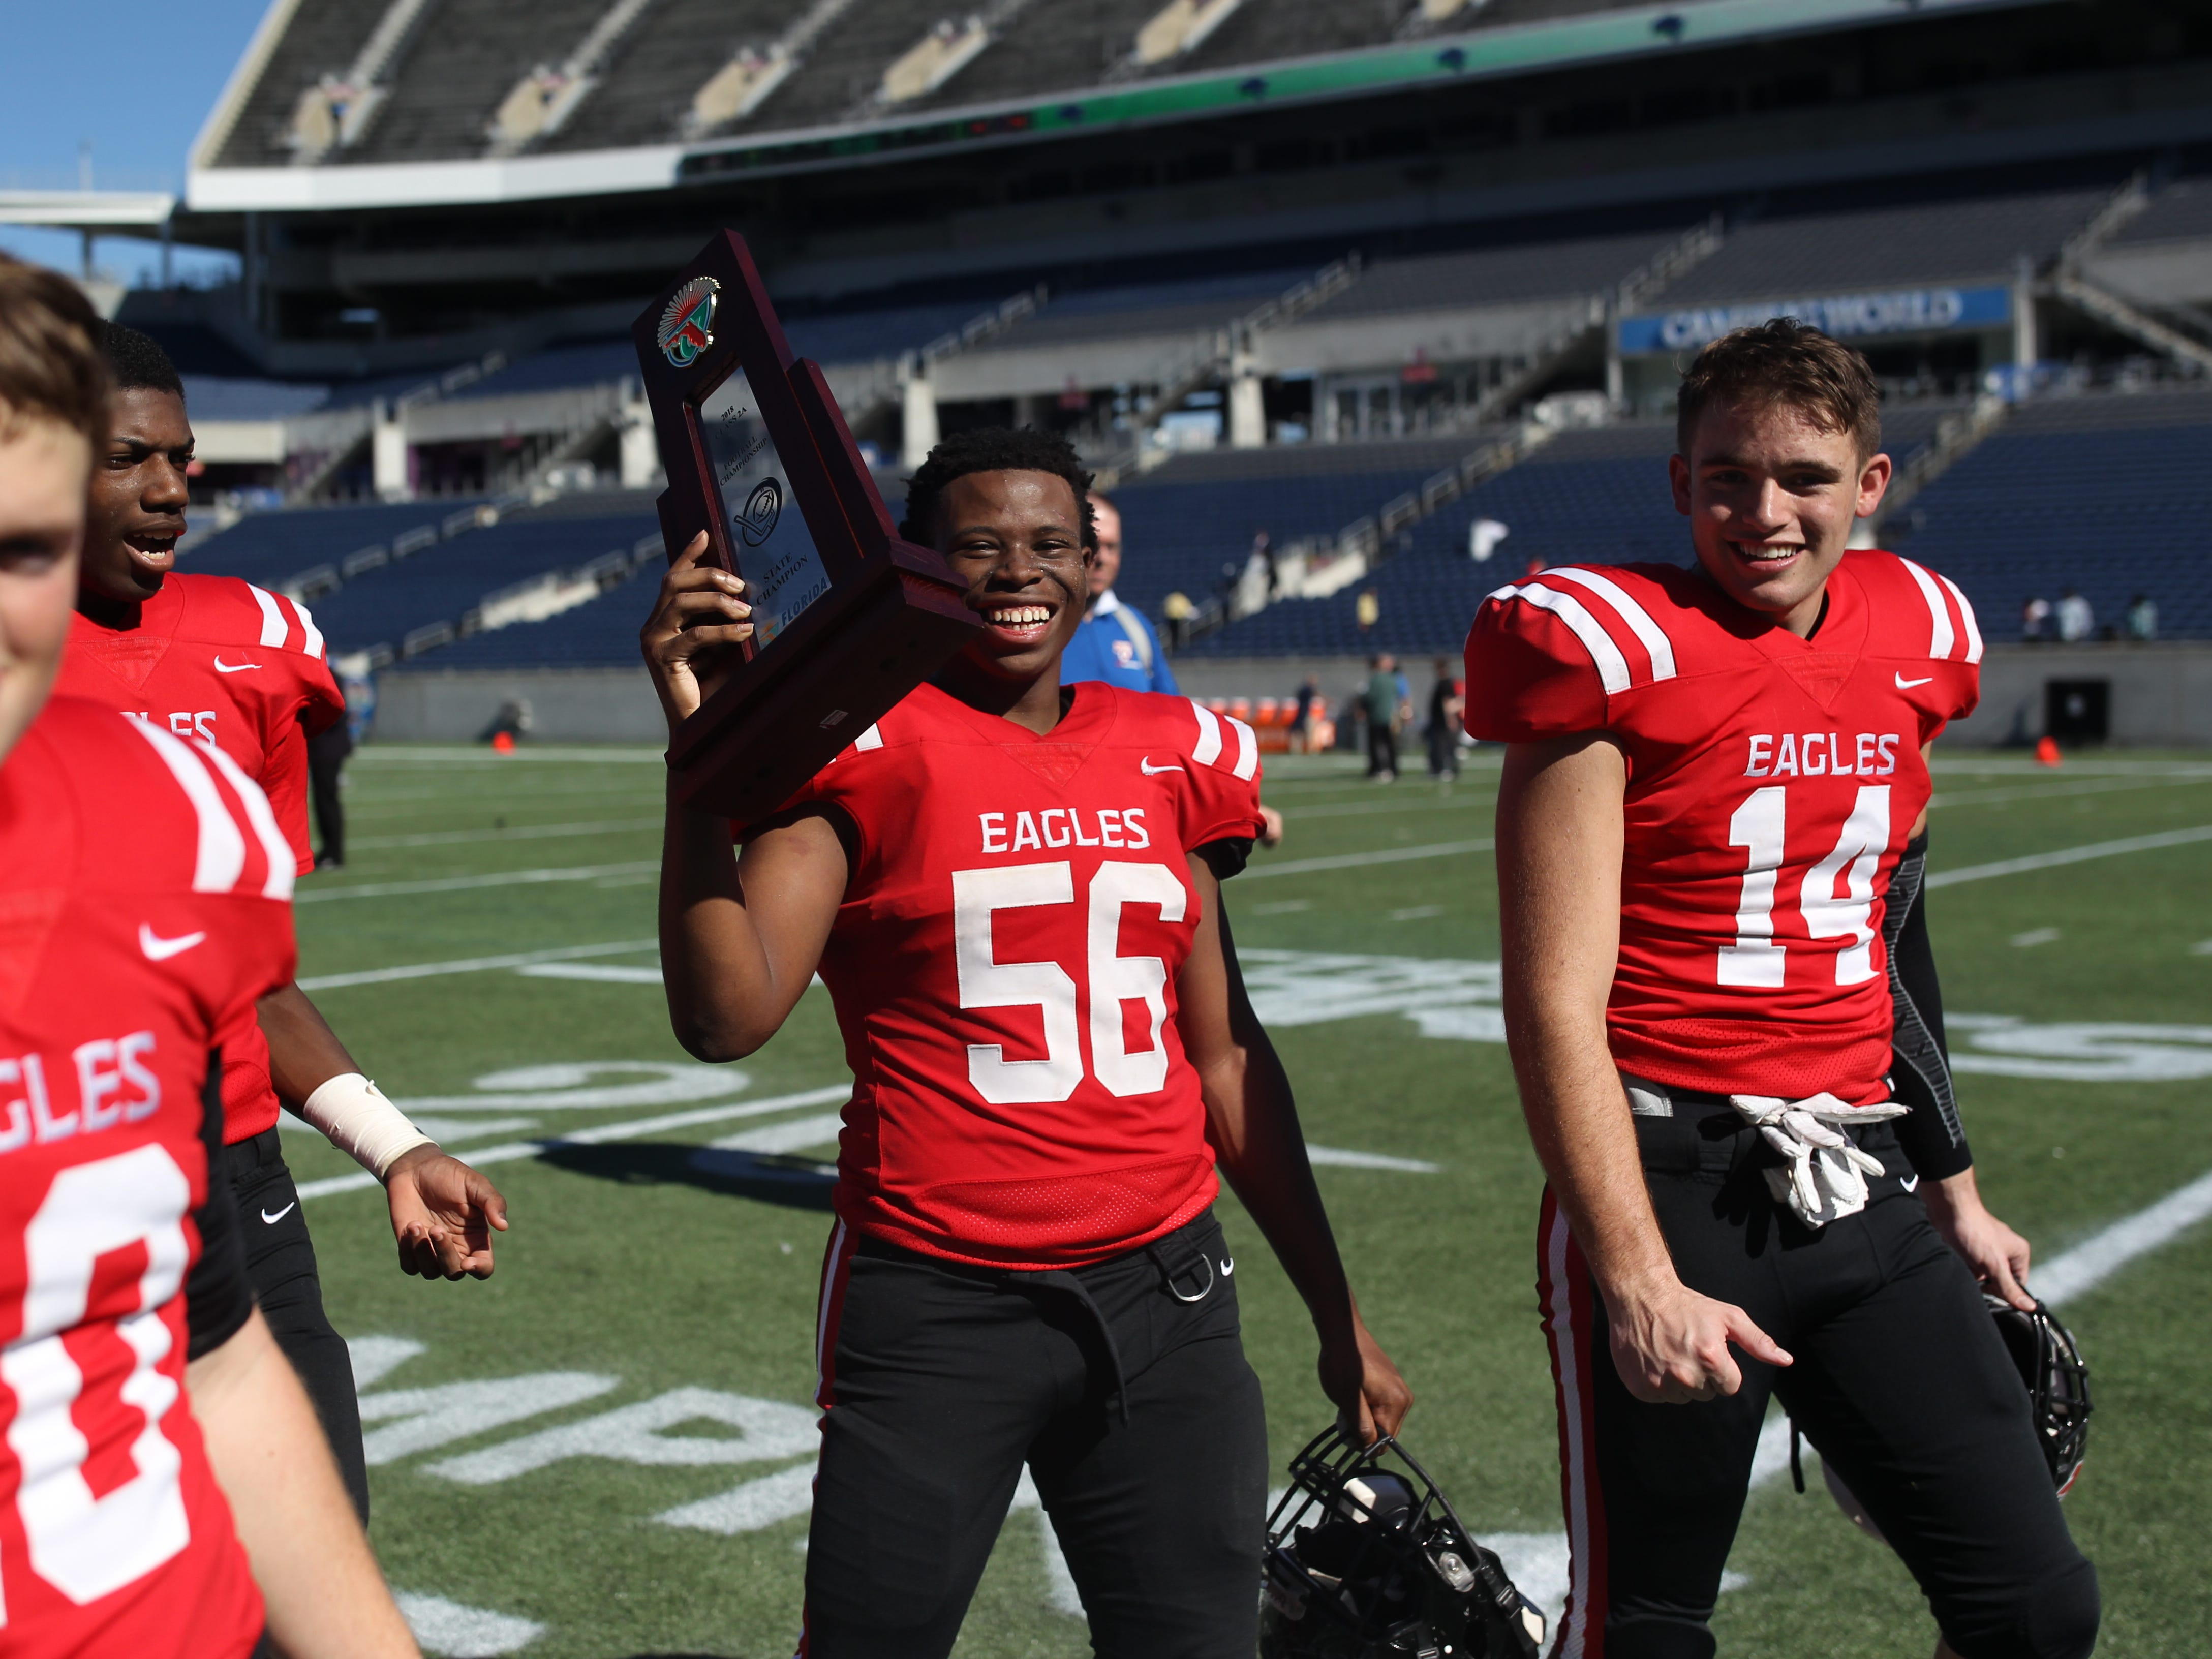 Elisha Partner (56) and Nick Molk (14) celebrate after NFC beat Champagnat Catholic 28-20 to win a Class 2A state championship on Friday, Dec. 7, 2018, at Orlando's Camping World Stadium.